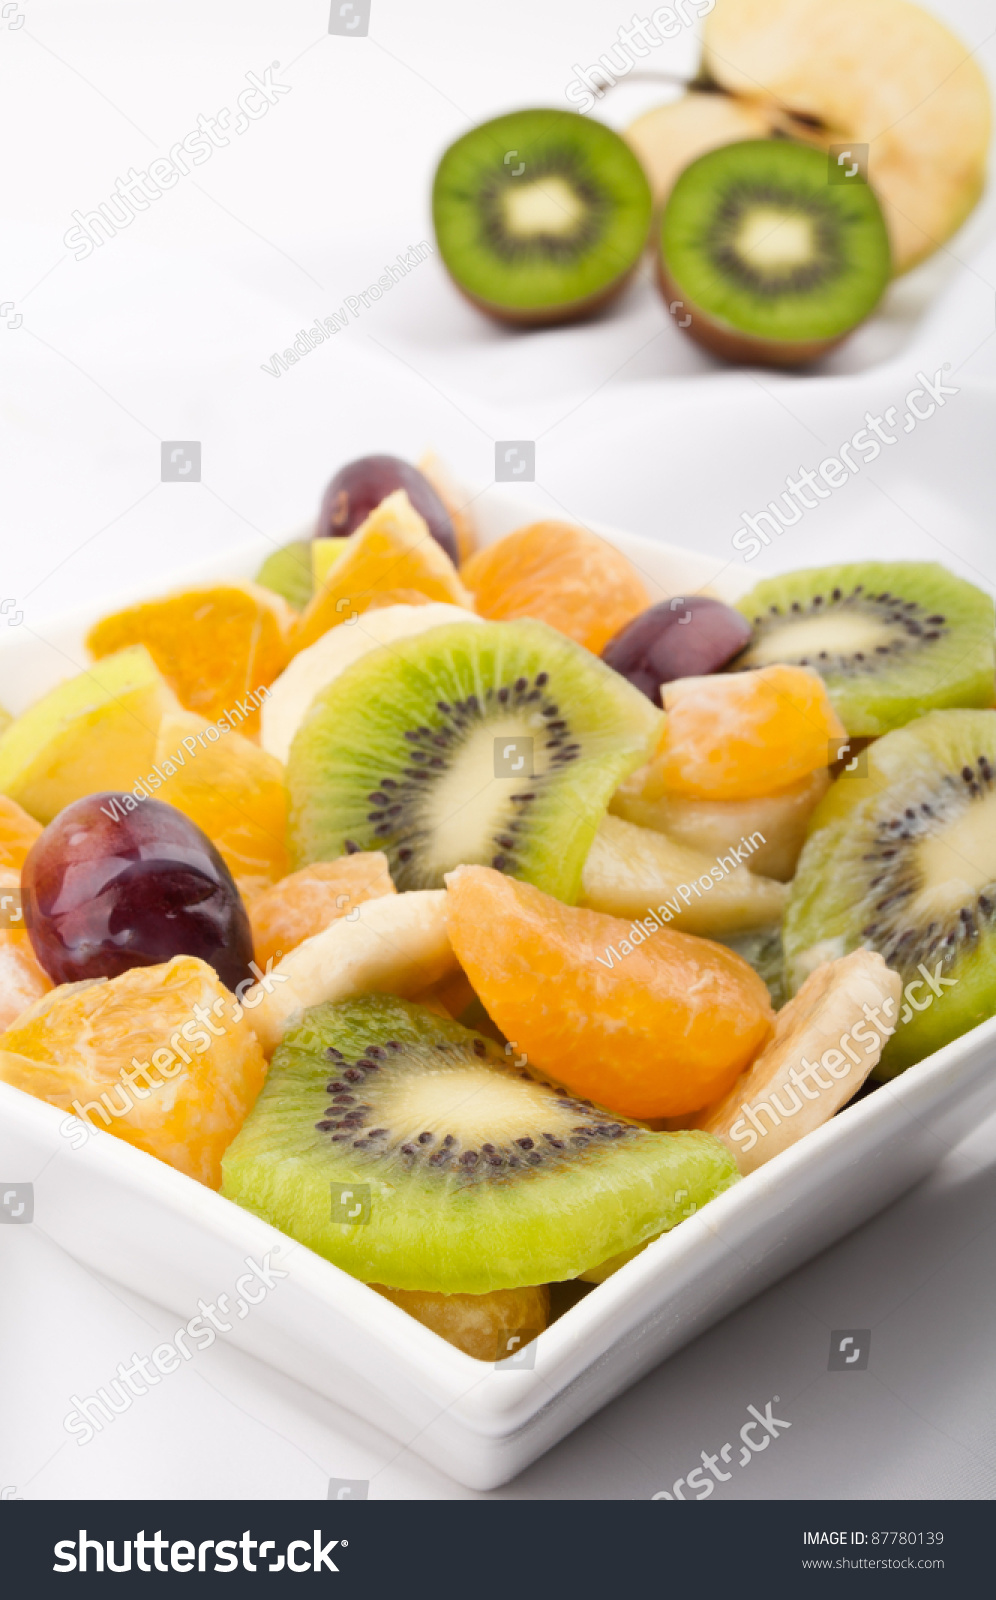 how to keep bananas fresh in fruit salad